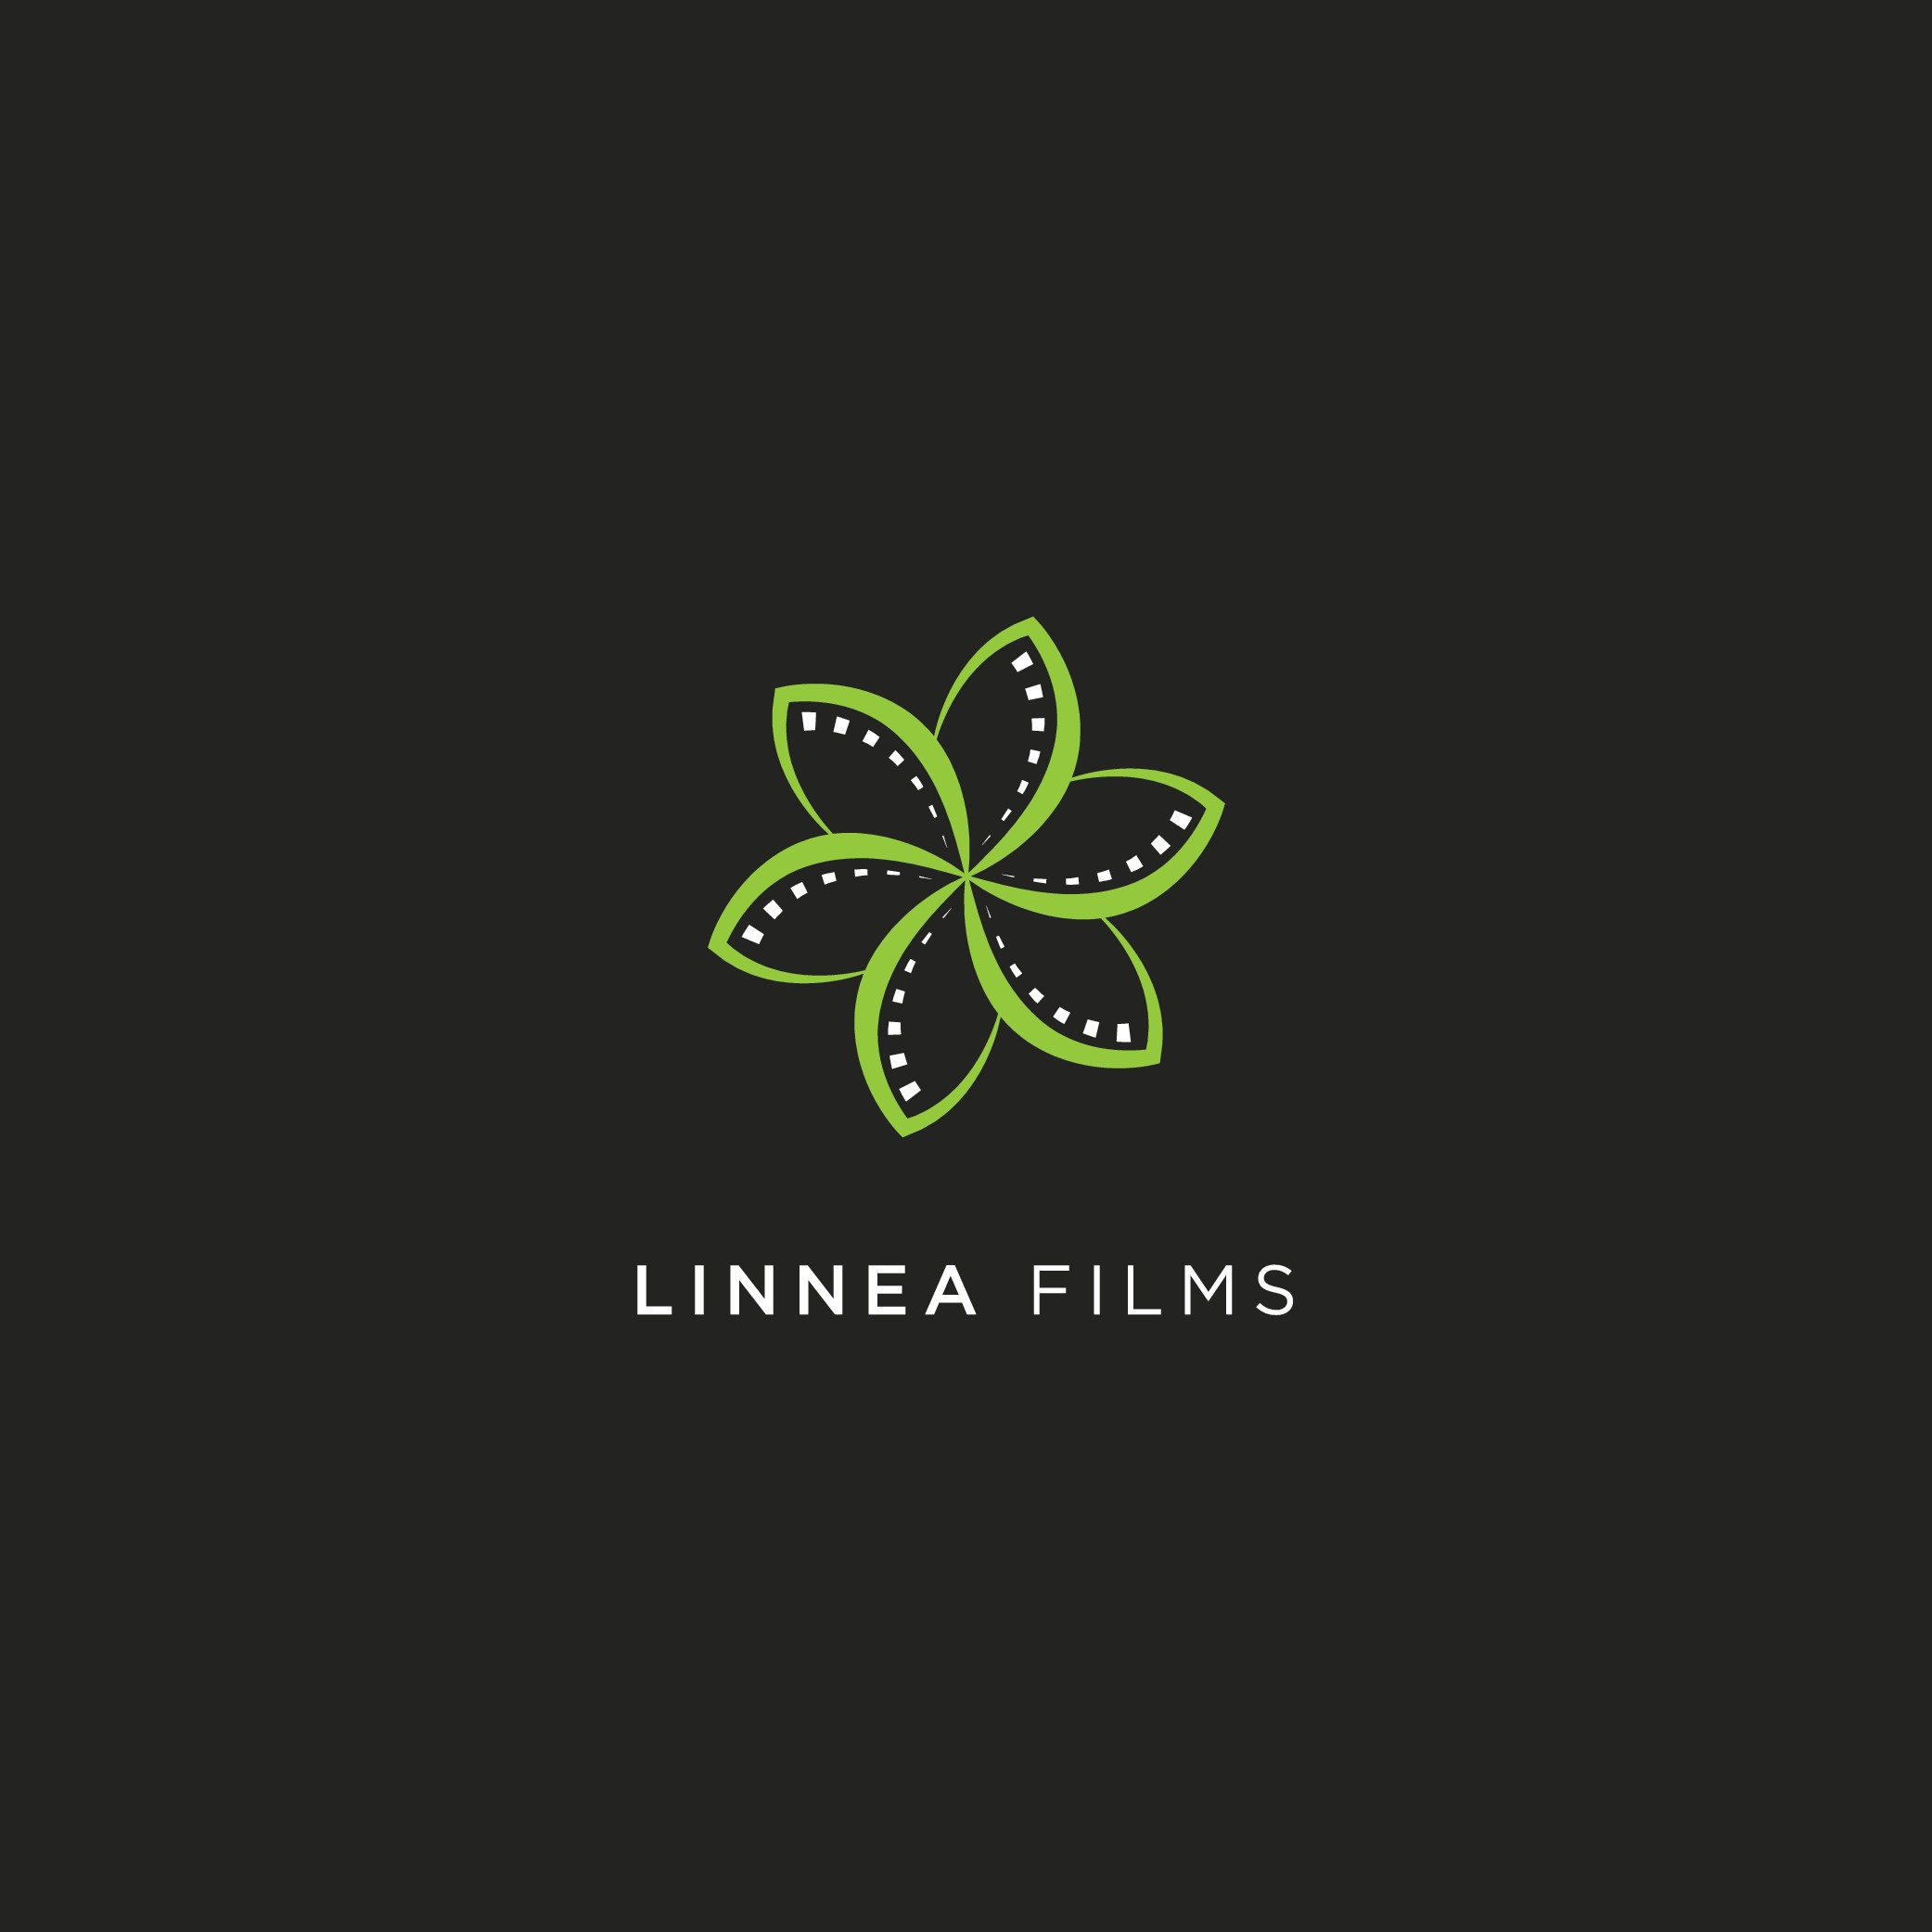 create a logo for an up-and-coming production company!!